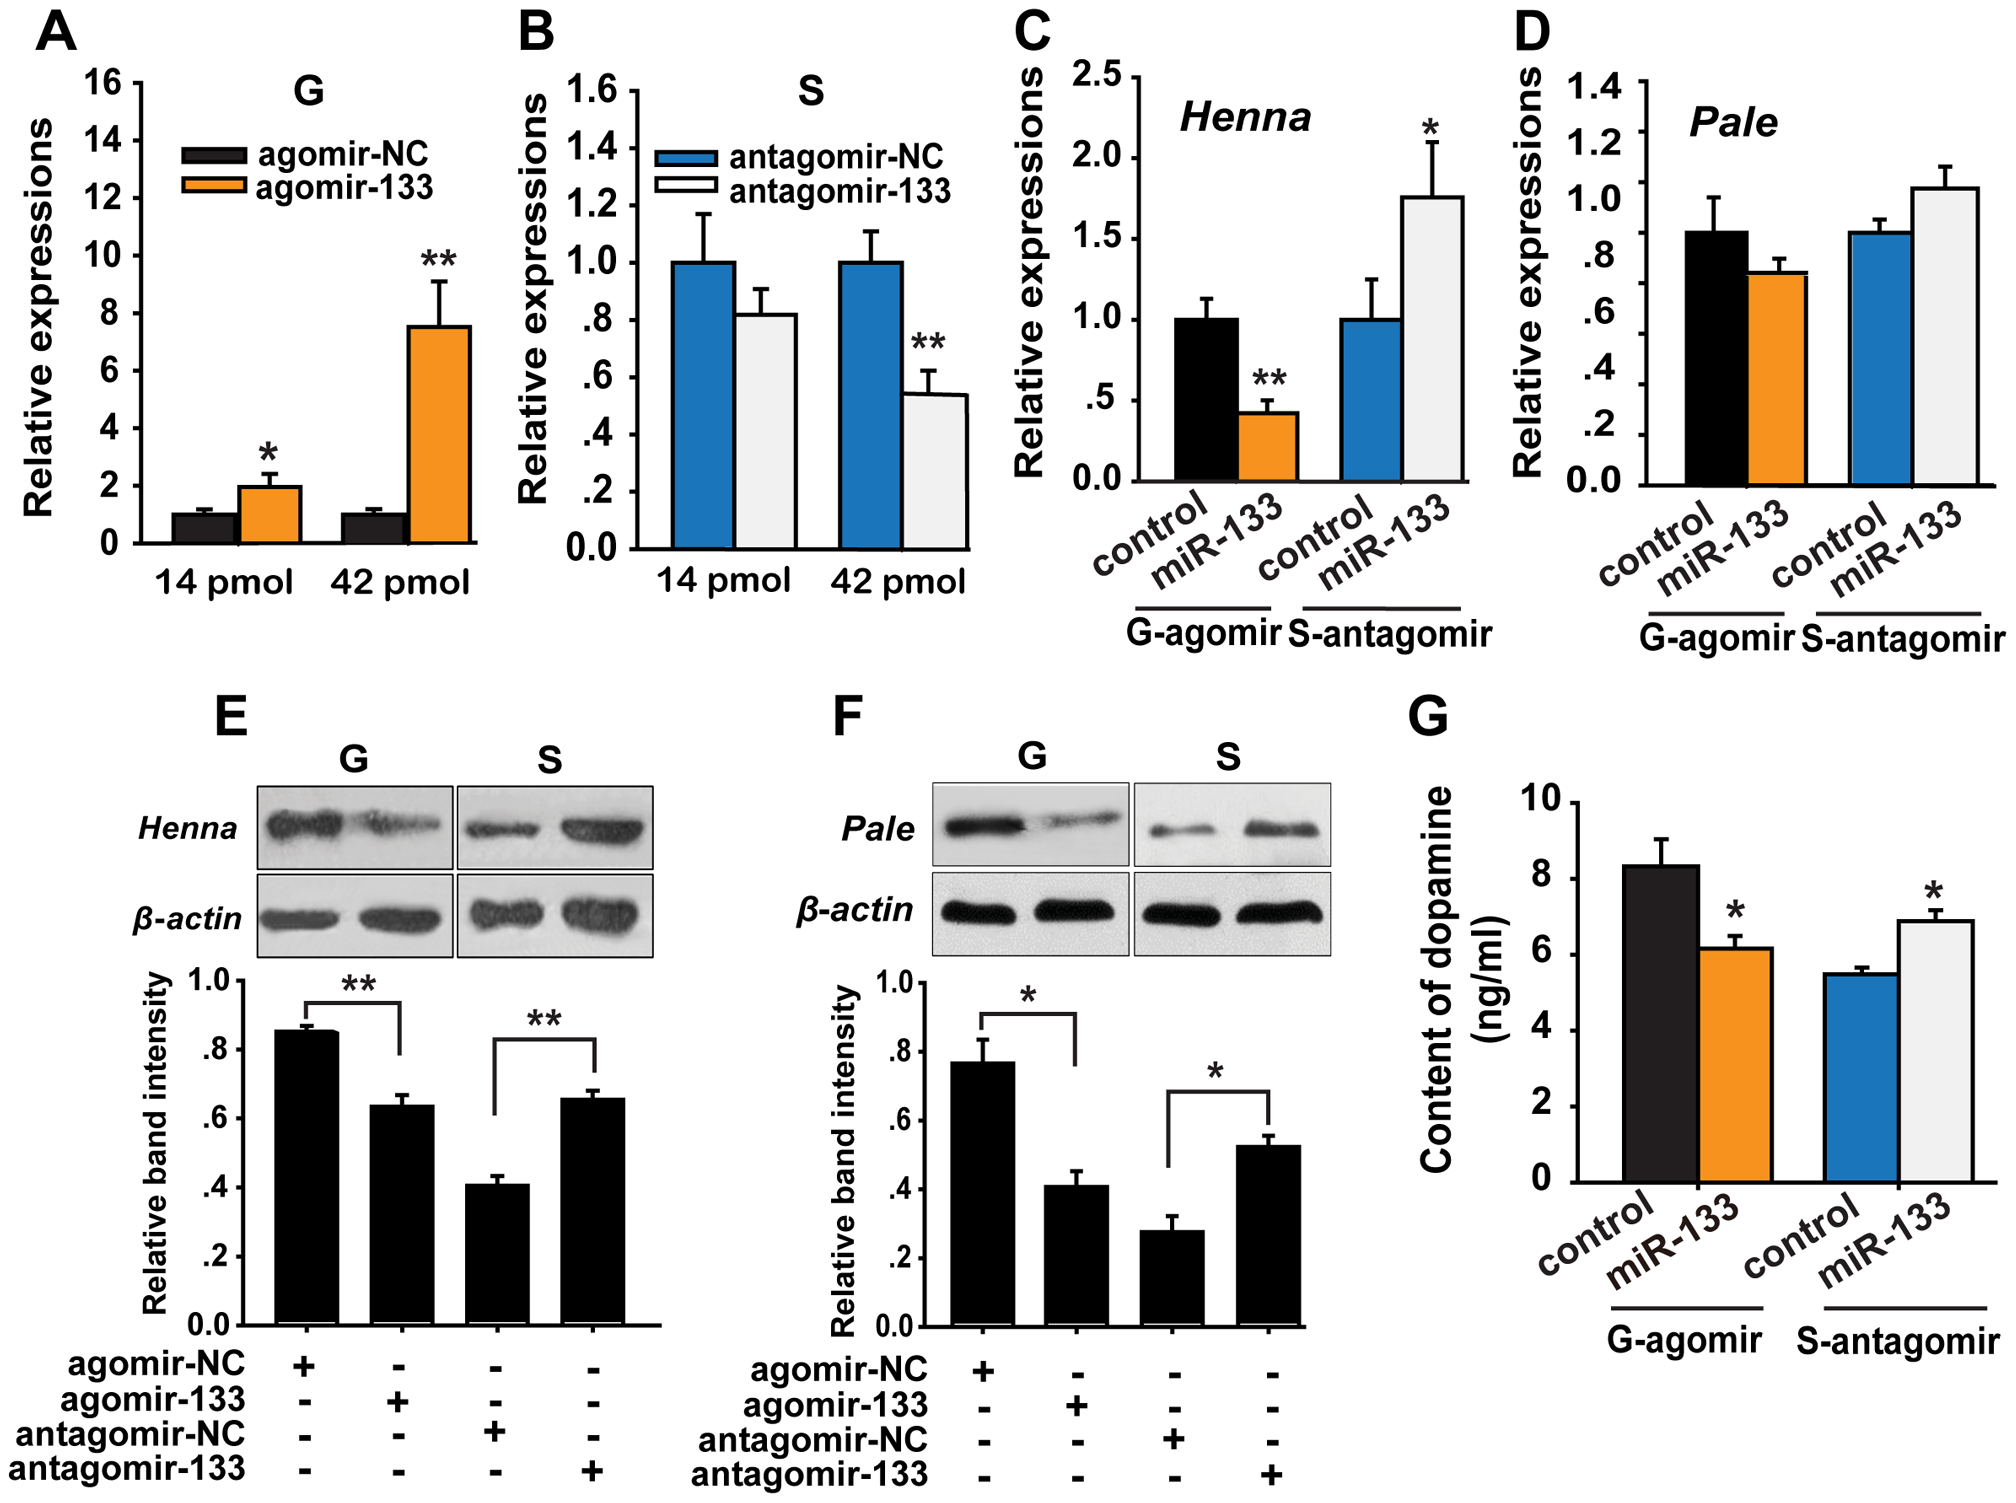 miR-133 controls dopamine production by regulating <i>henna</i> and <i>pale</i> expression in the locust brain.